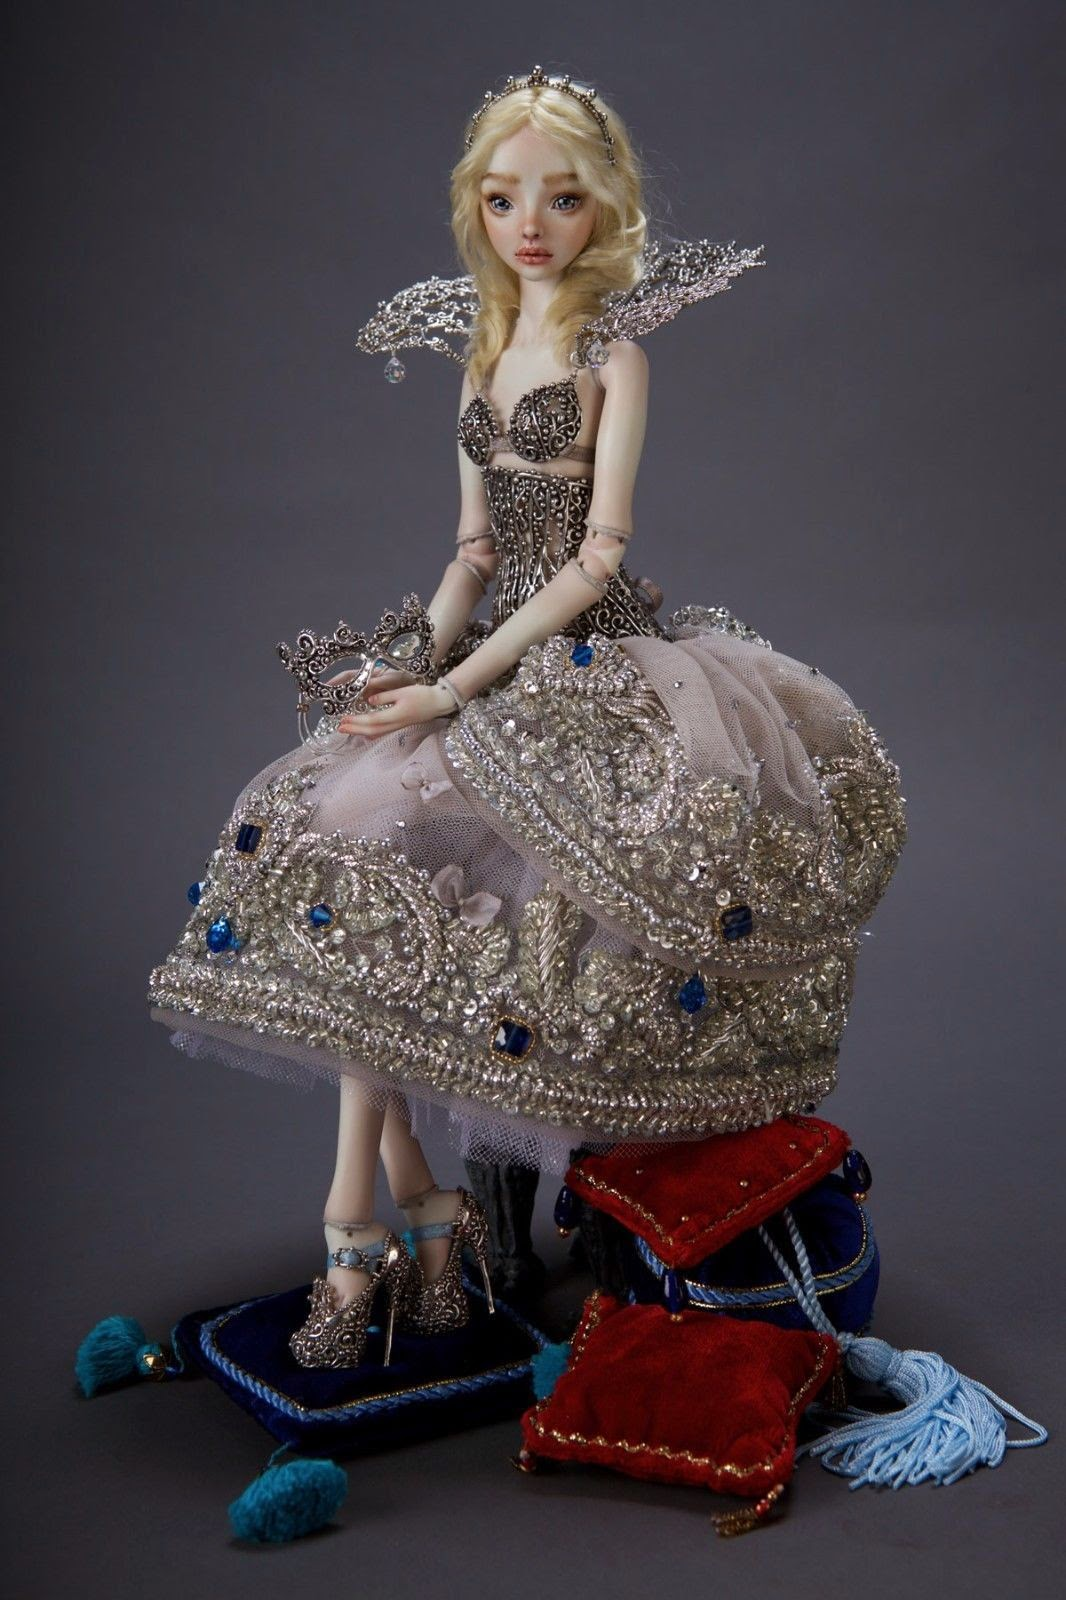 The Majokko Shop Enchanted Doll Ebay Auction You Ve Gotta Check This Out